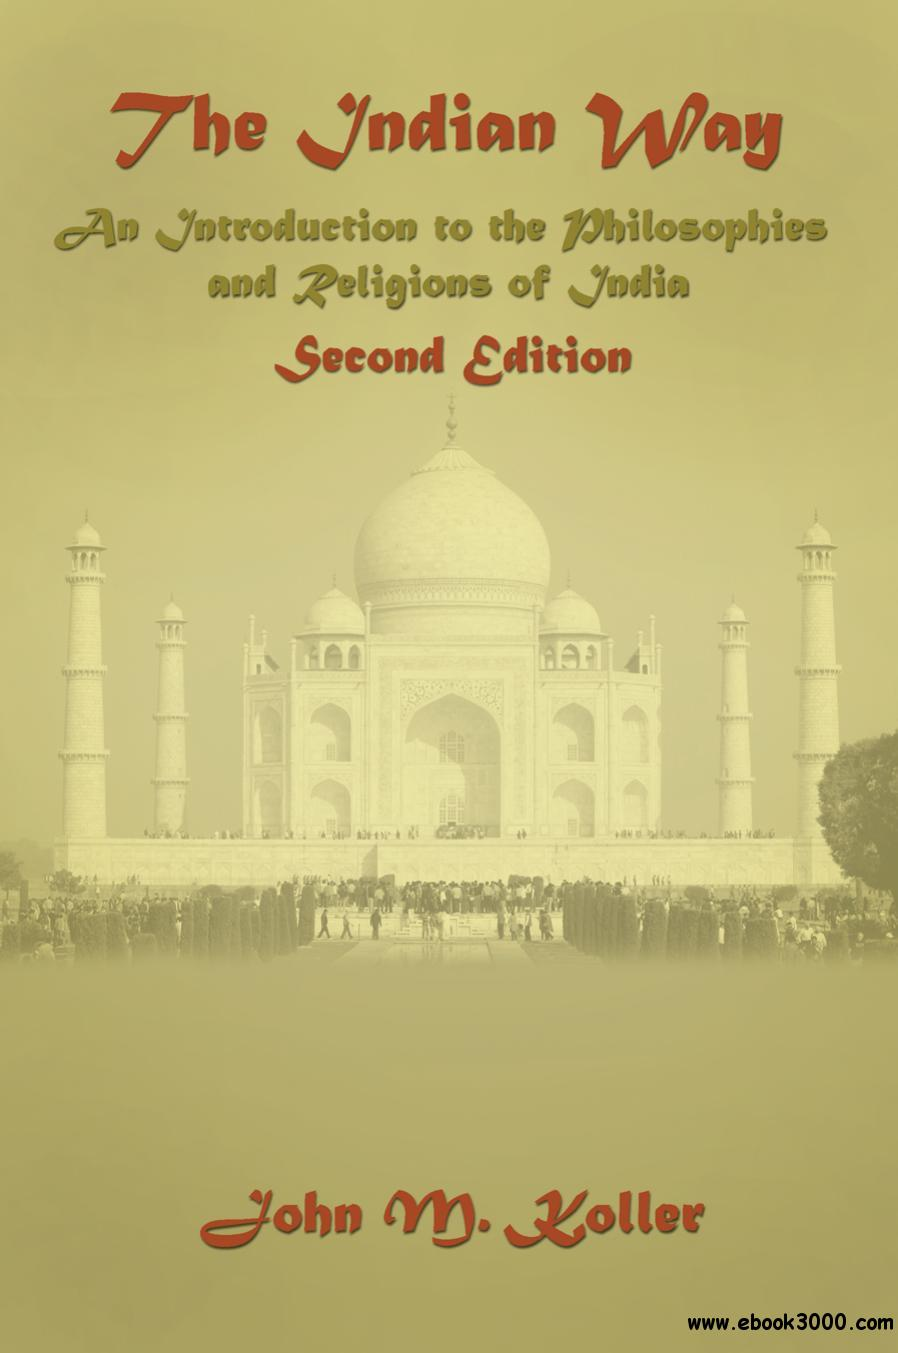 The Indian Way: An Introduction to the Philosophies & Religions of India, 2nd Edition